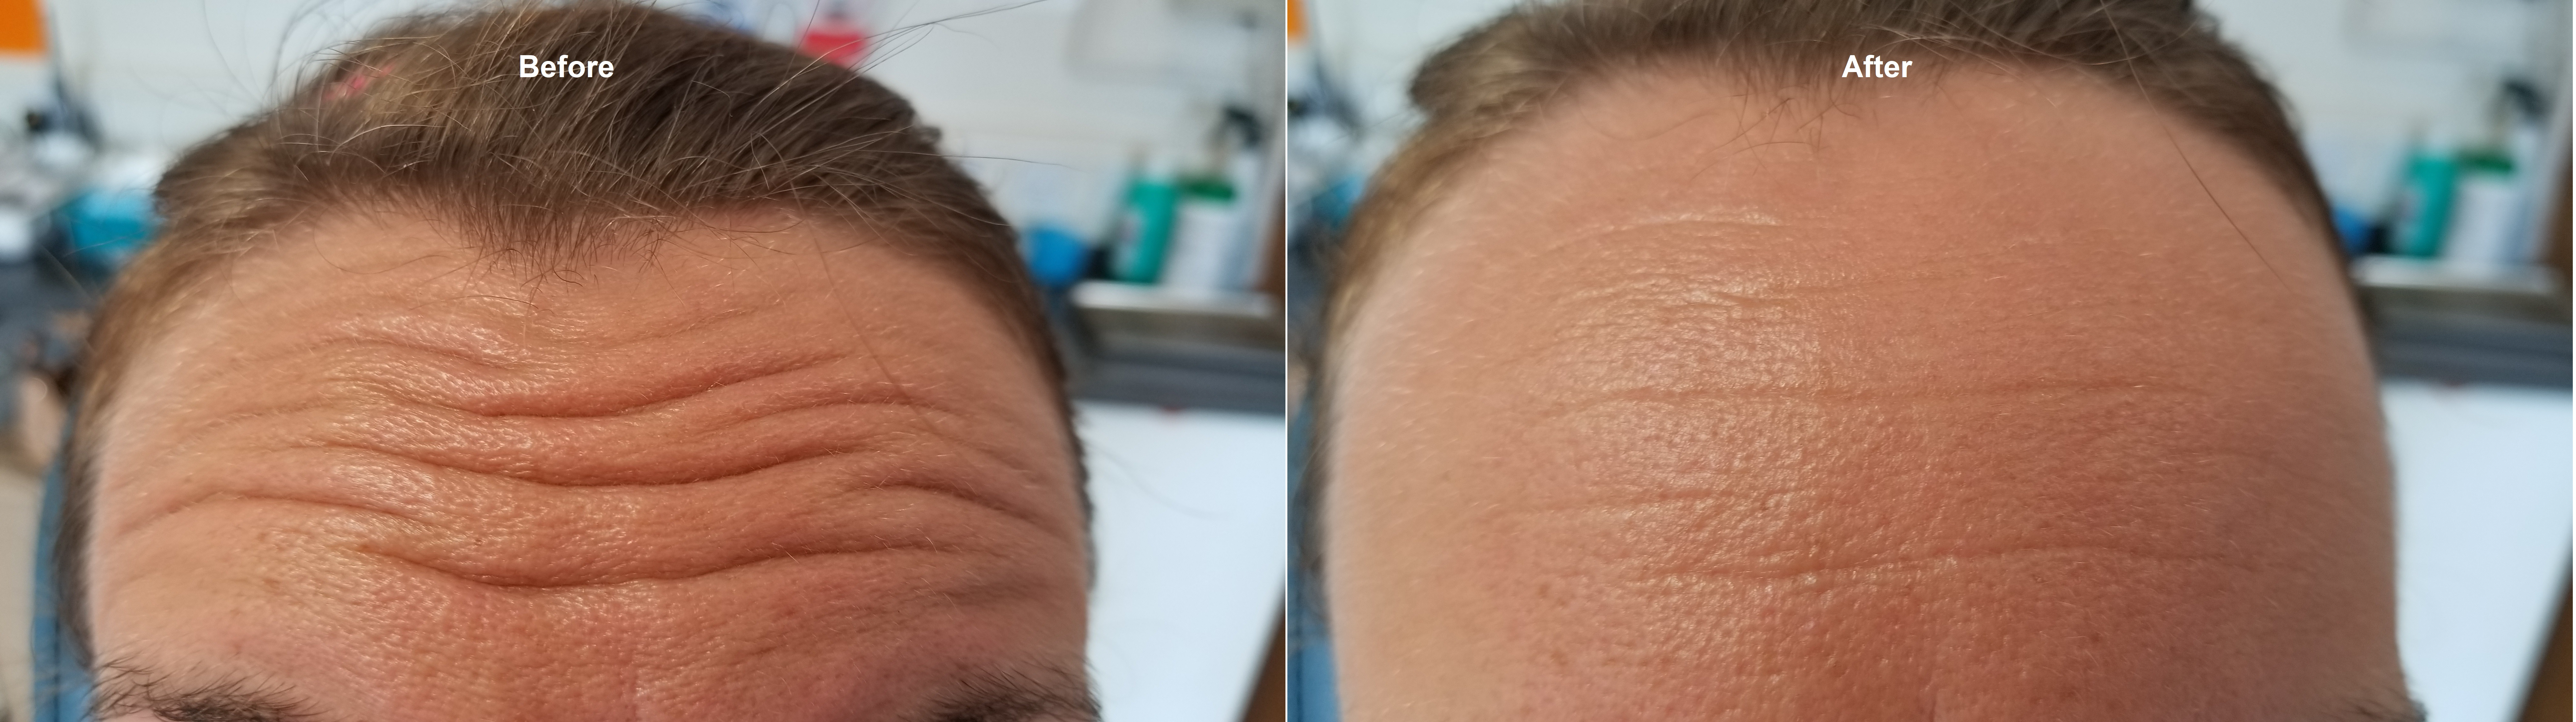 Wrinkle smoothing procedure - Before & After